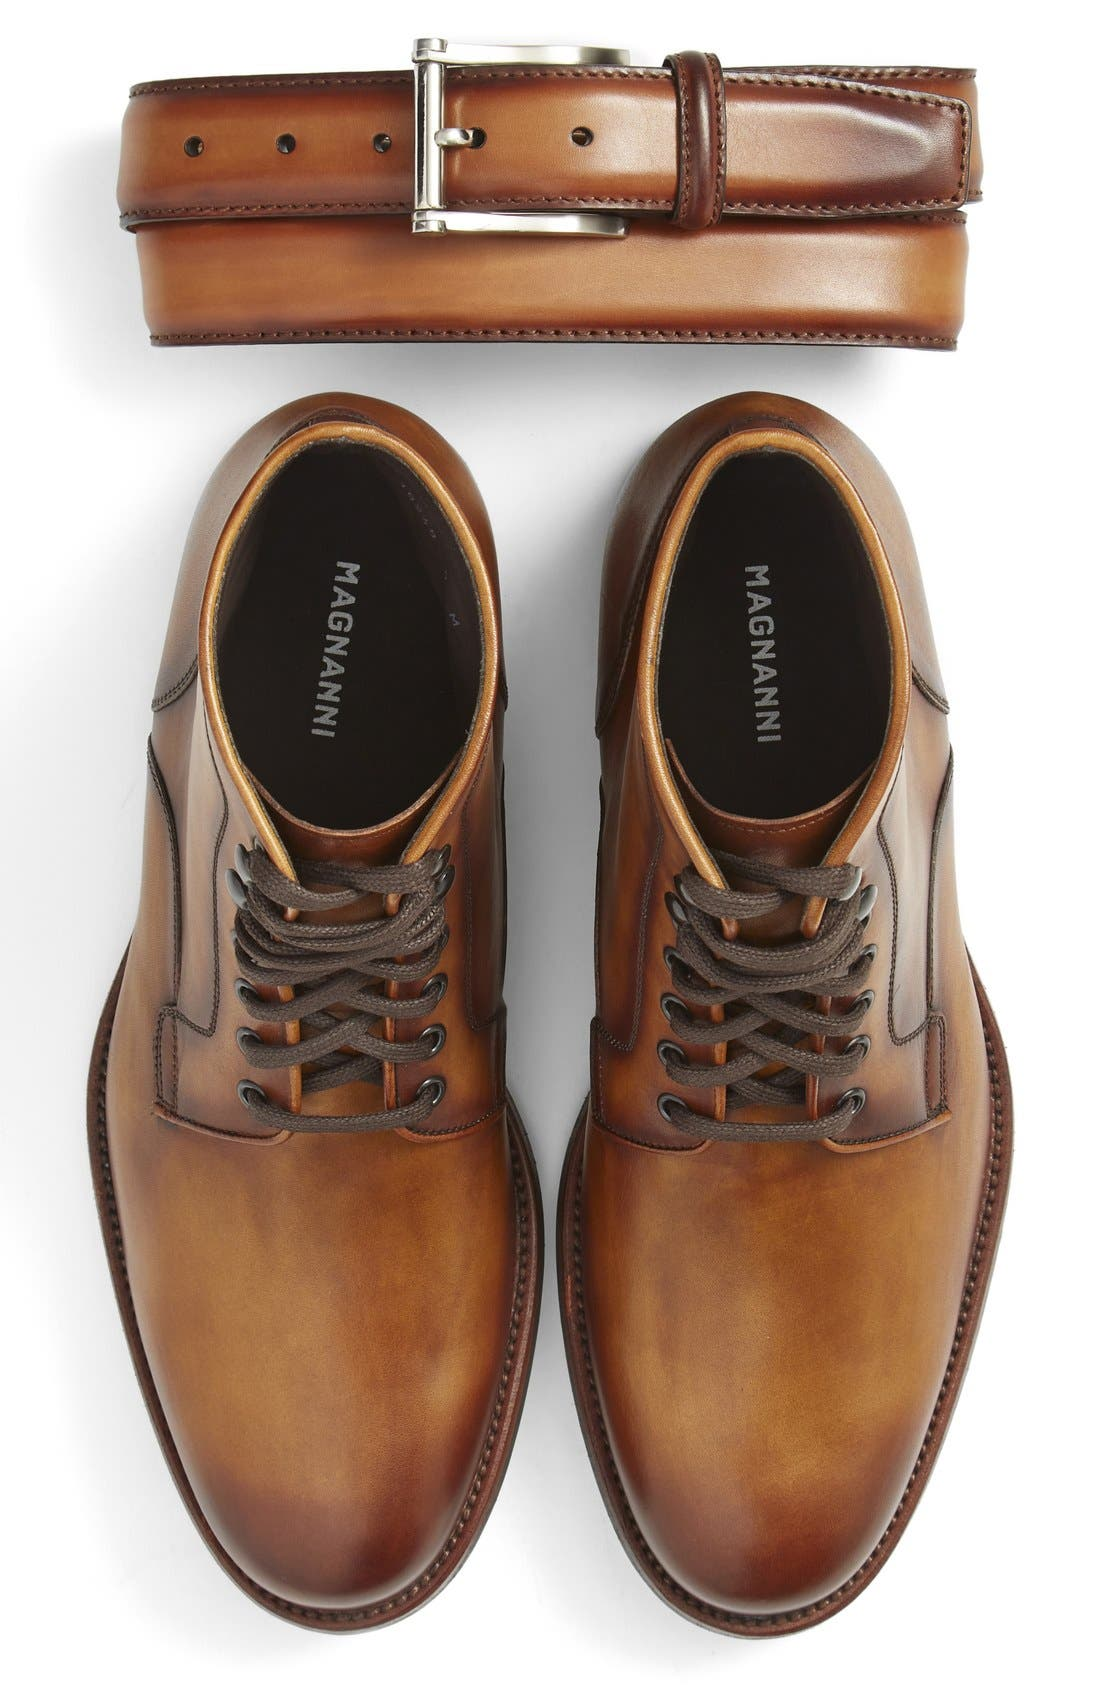 Magnanni Belt & Plain Toe Boot